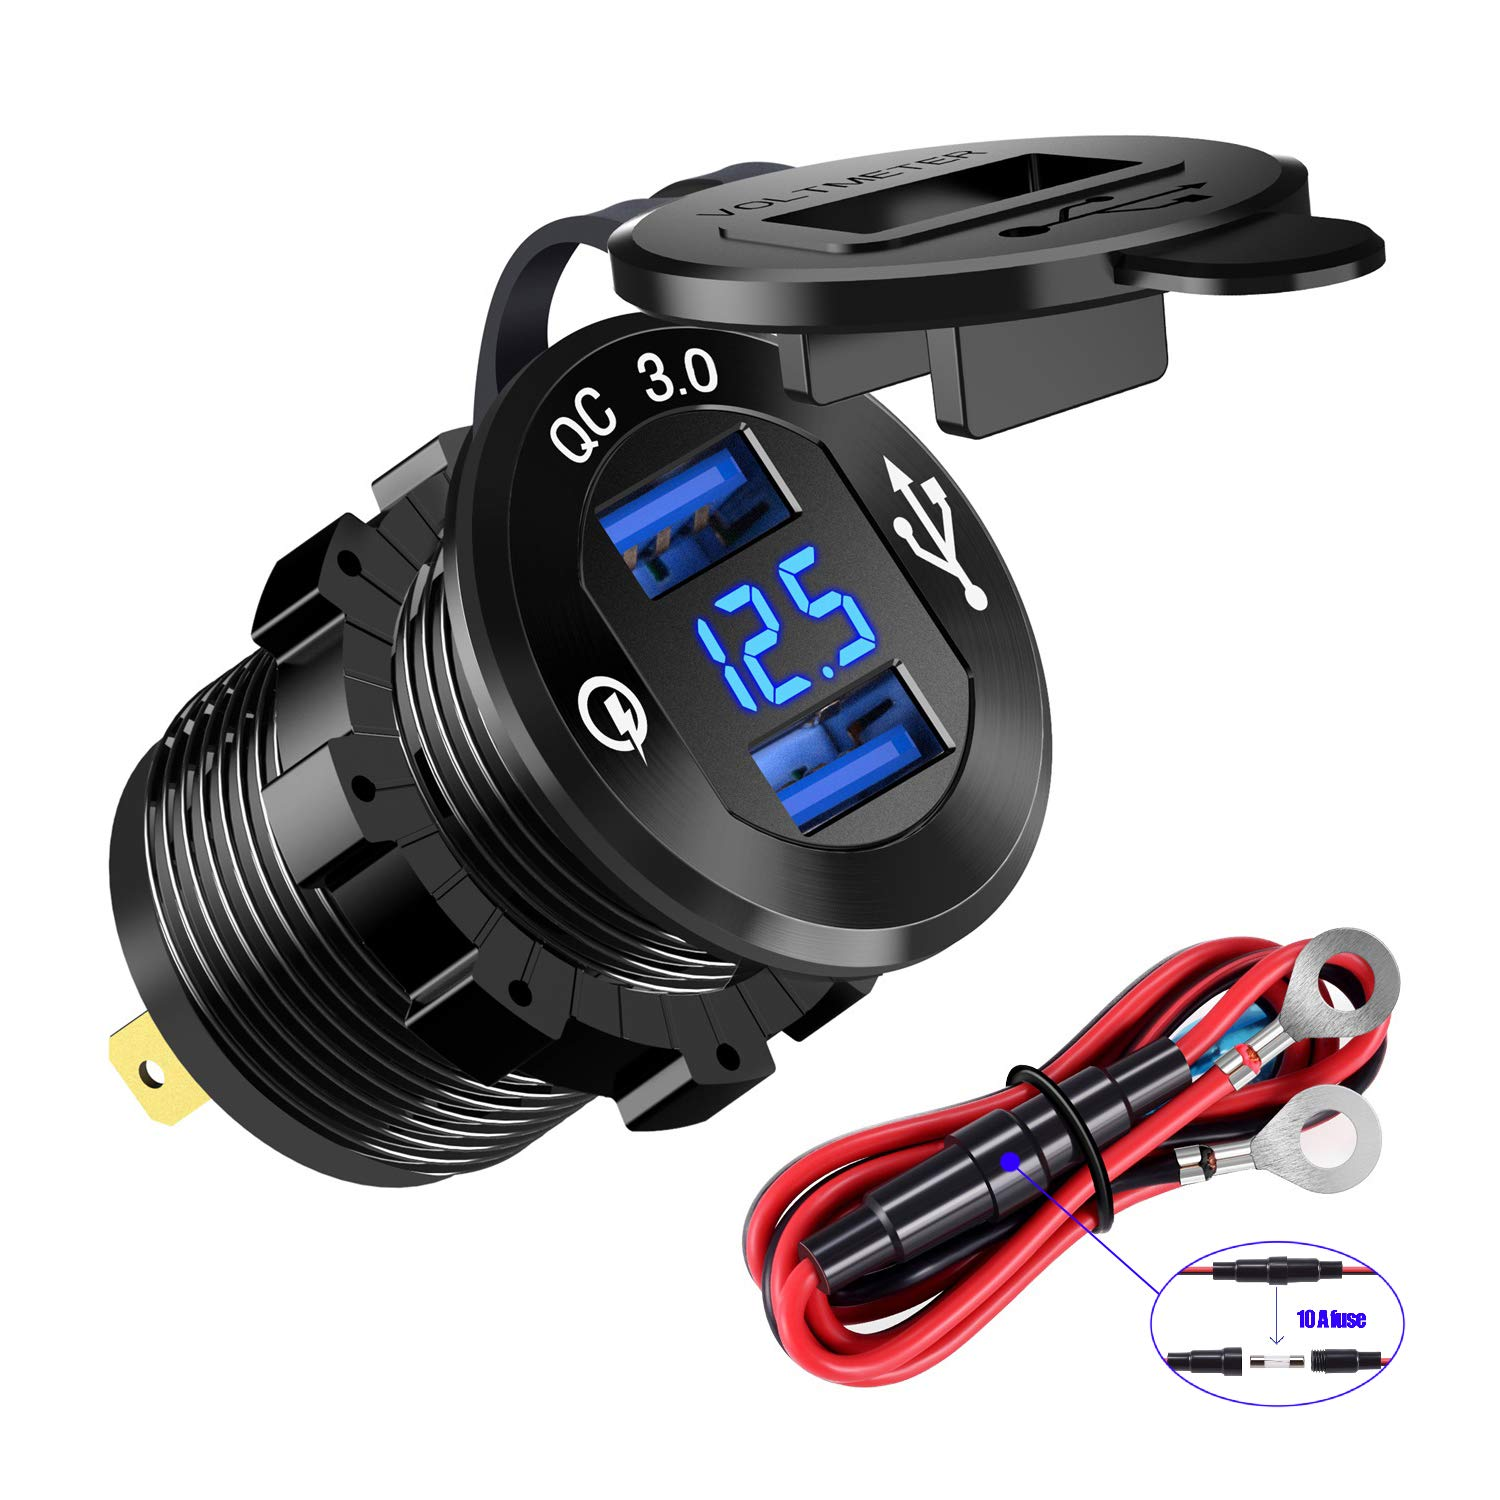 YonHan Quick Charge 3.0 Dual USB Charger Socket, Waterproof Aluminum Power Outlet Fast Charge with LED Voltmeter & Wire Fuse DIY Kit for 12V/24V Car Boat Marine ATV Bus Truck and More  by YONHAN